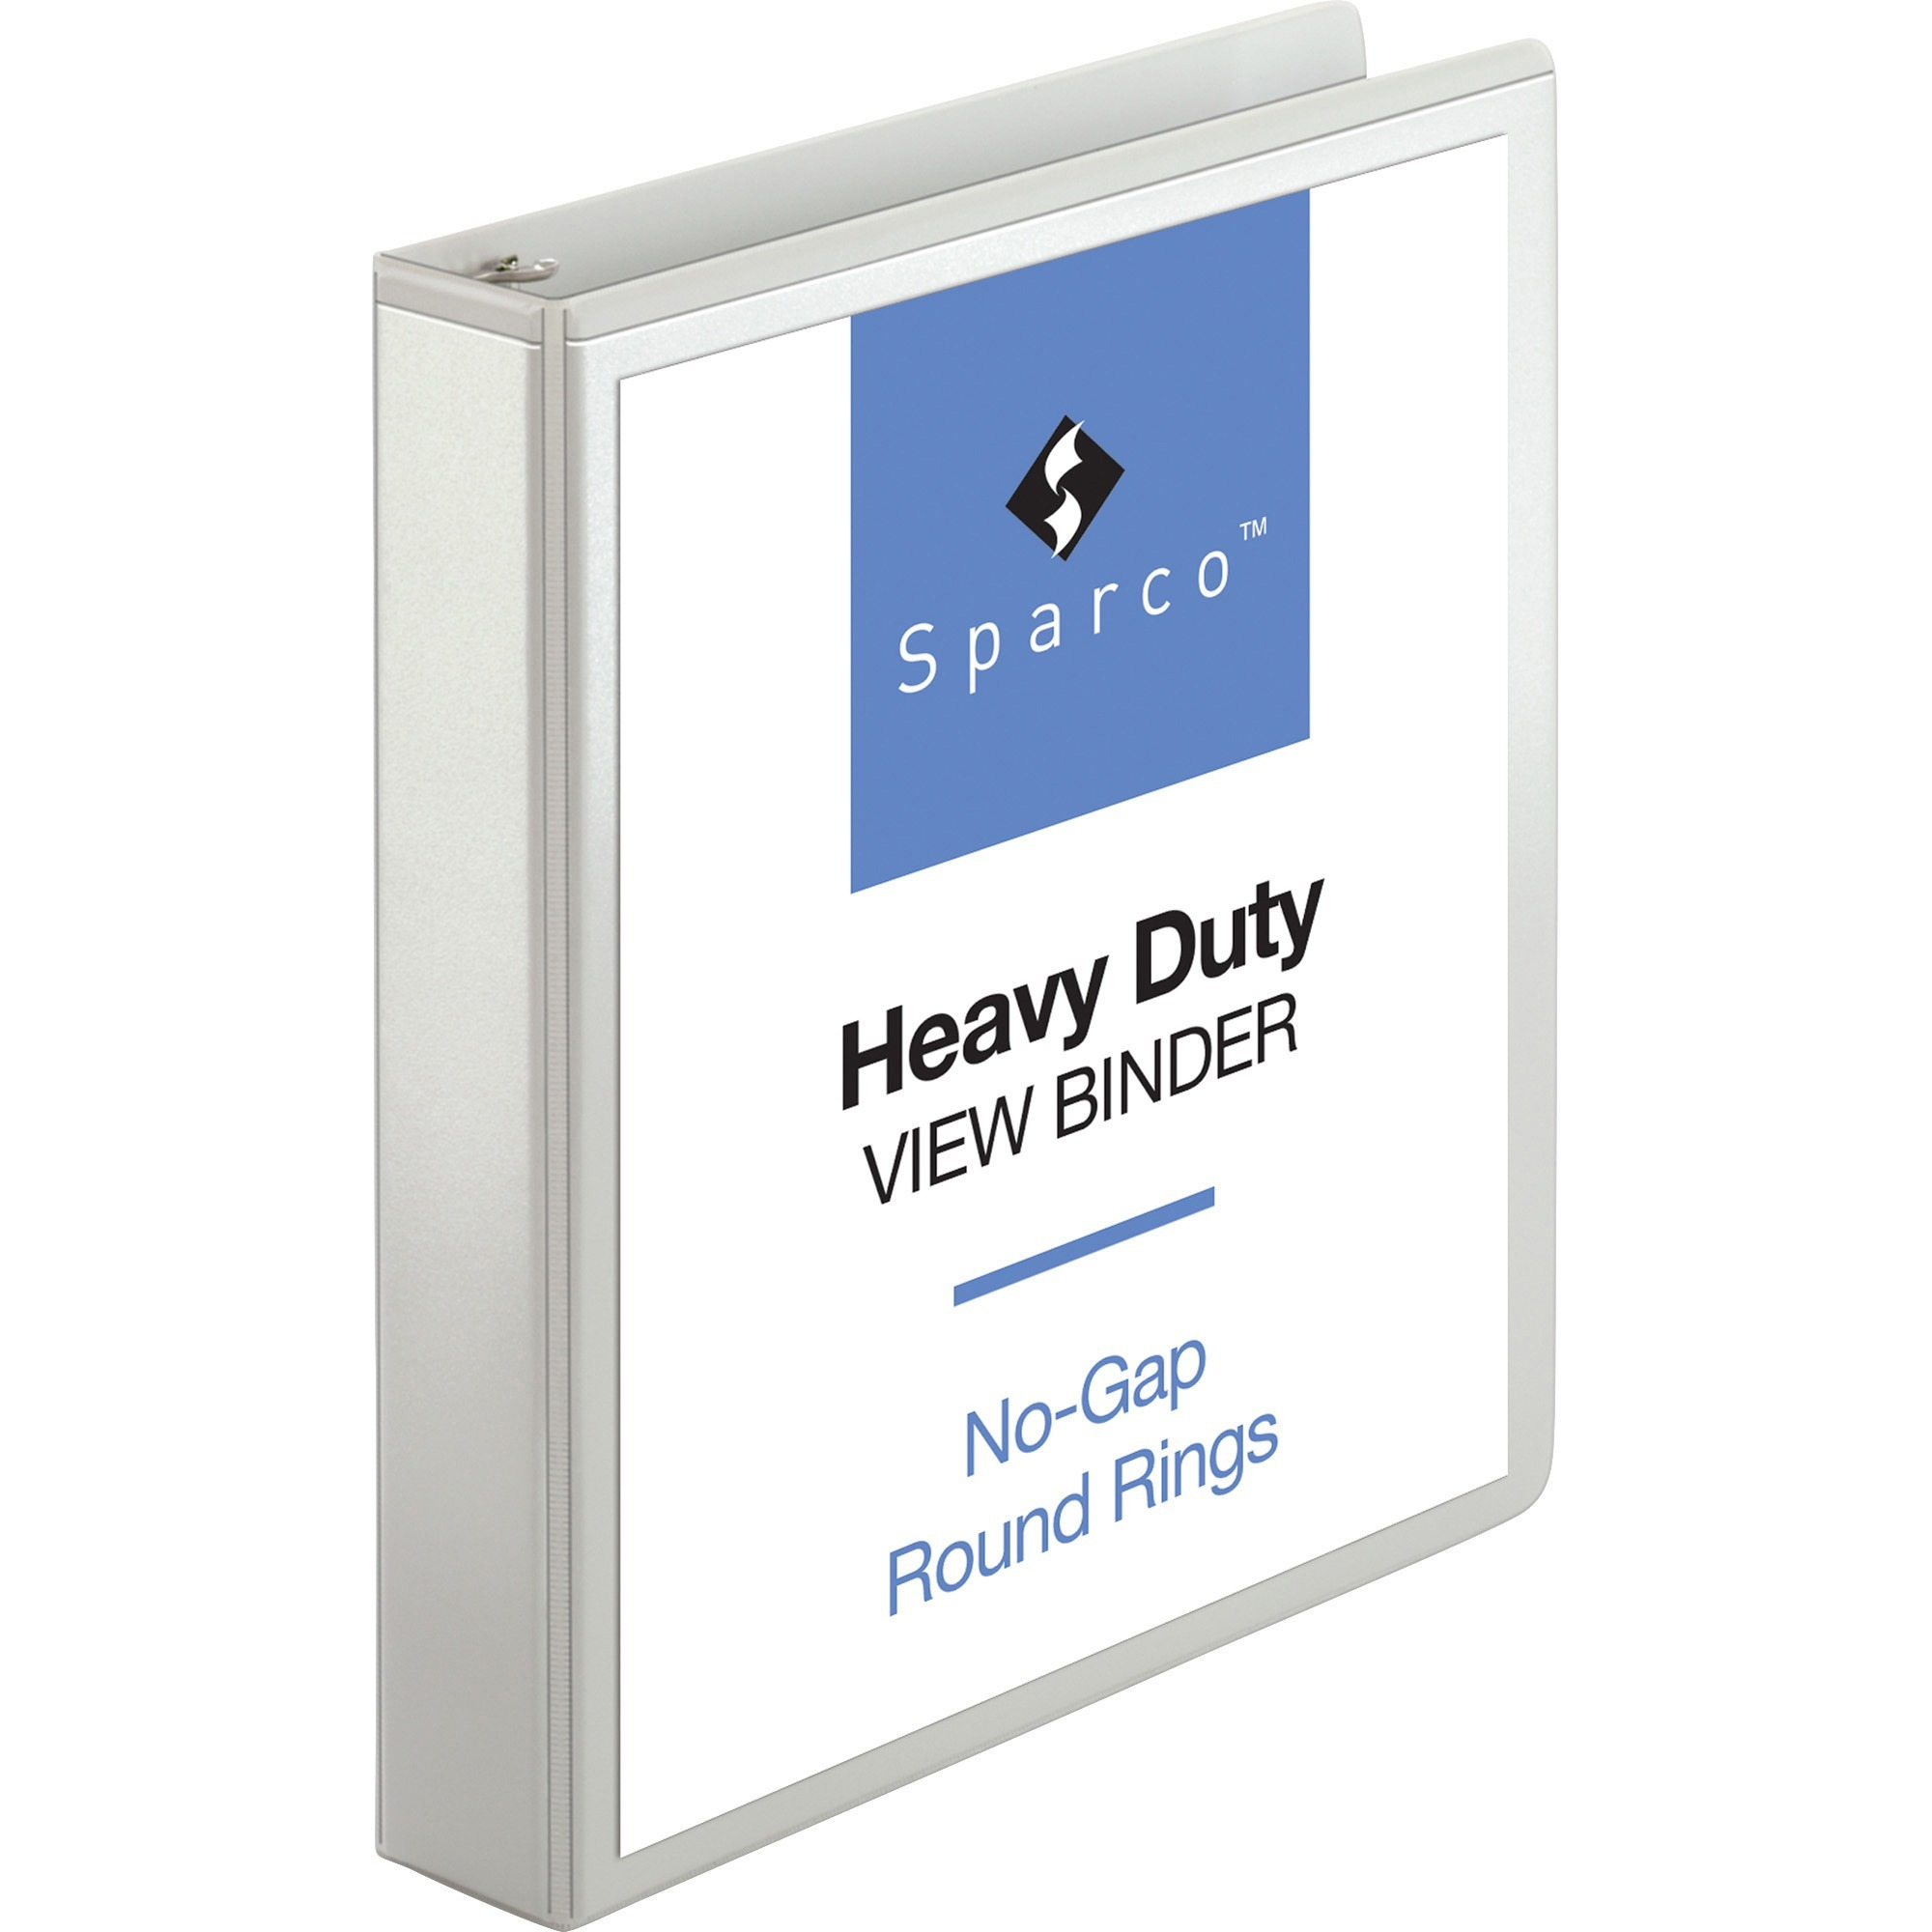 Sparco, SPR19651, Premium Round Ring View Binders, 1 Each, White